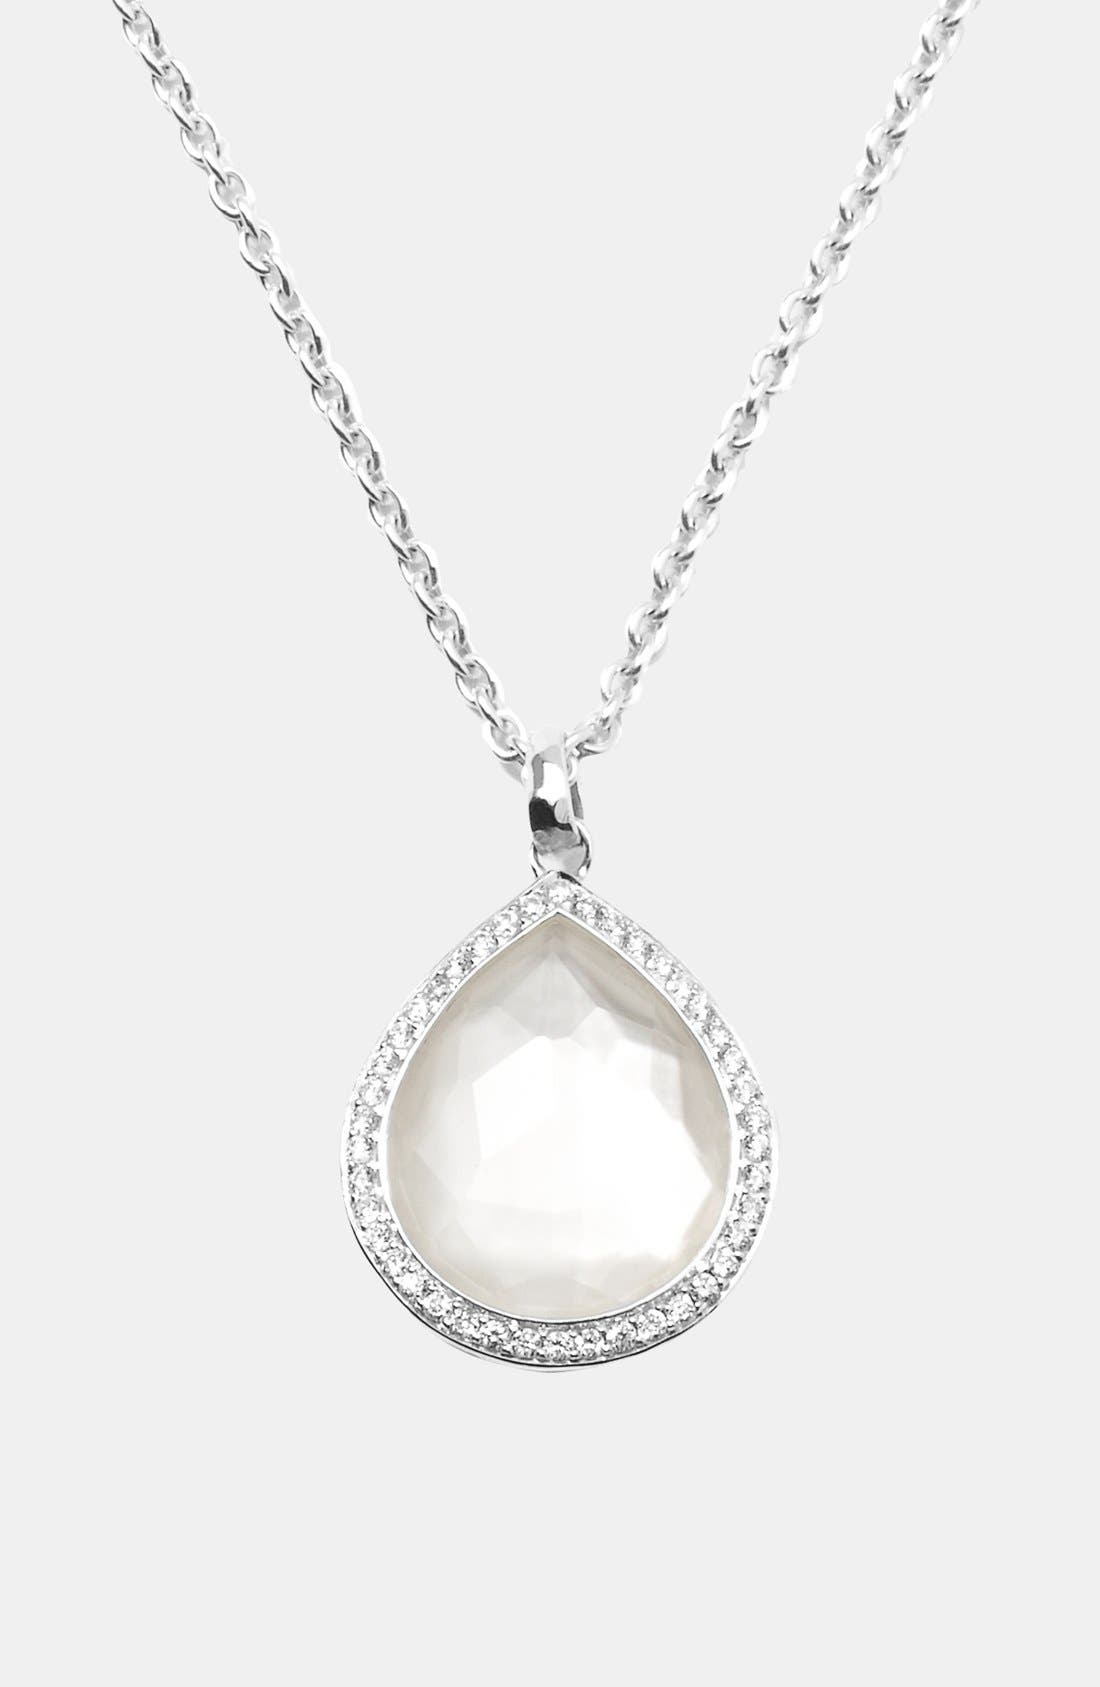 Main Image - Ippolita 'Stella' Small Teardrop Pendant Necklace